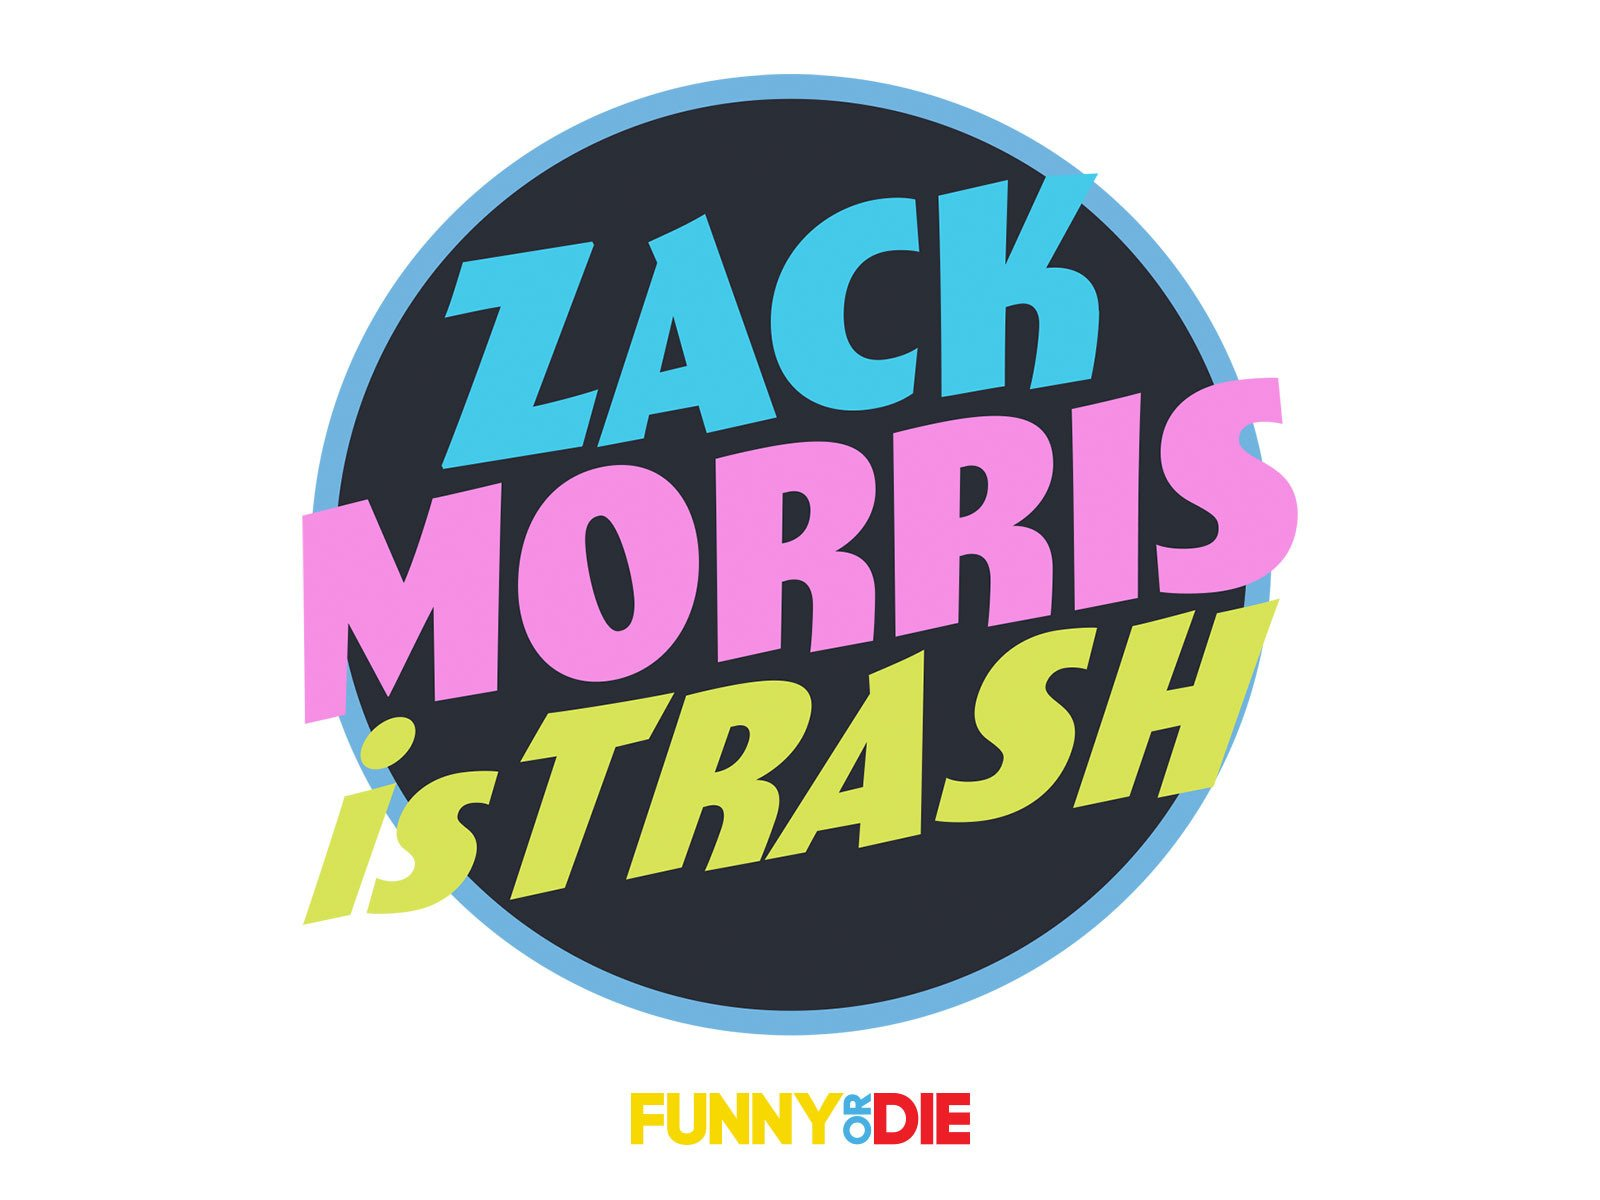 Zack Morris Is Trash - Season 1